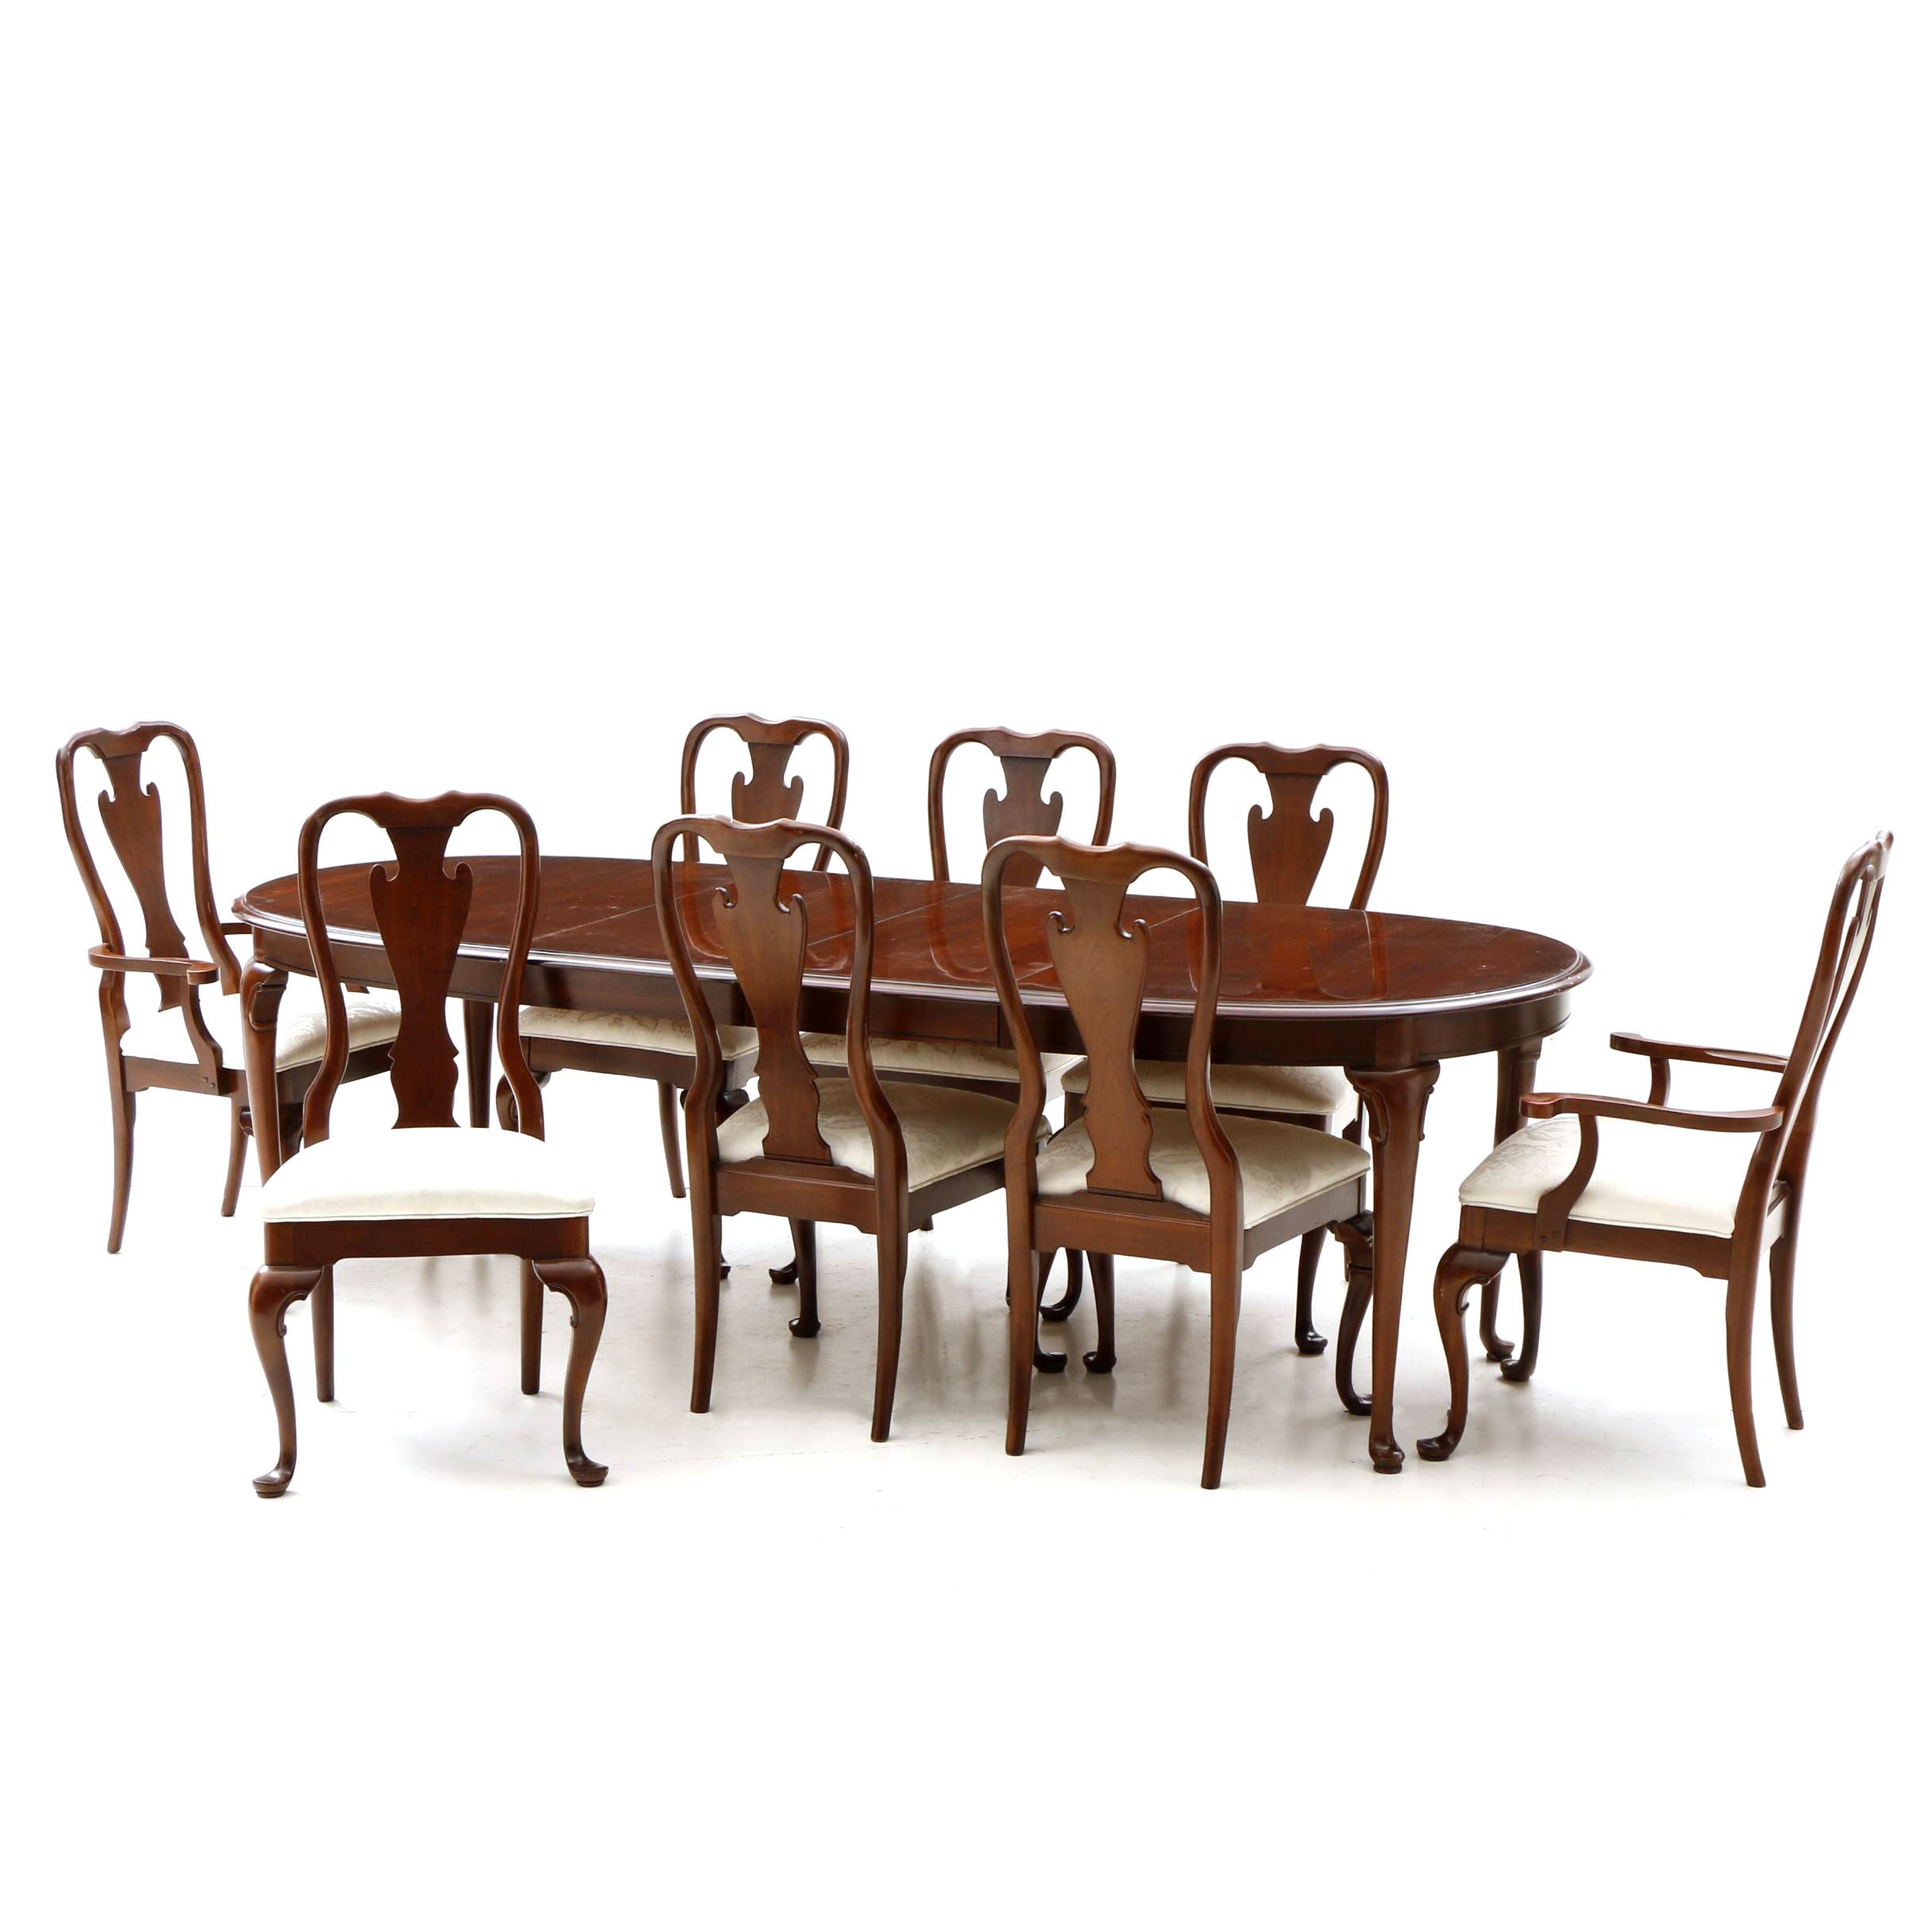 Queen Anne Stye Dining Table with Chairs by Kincaid